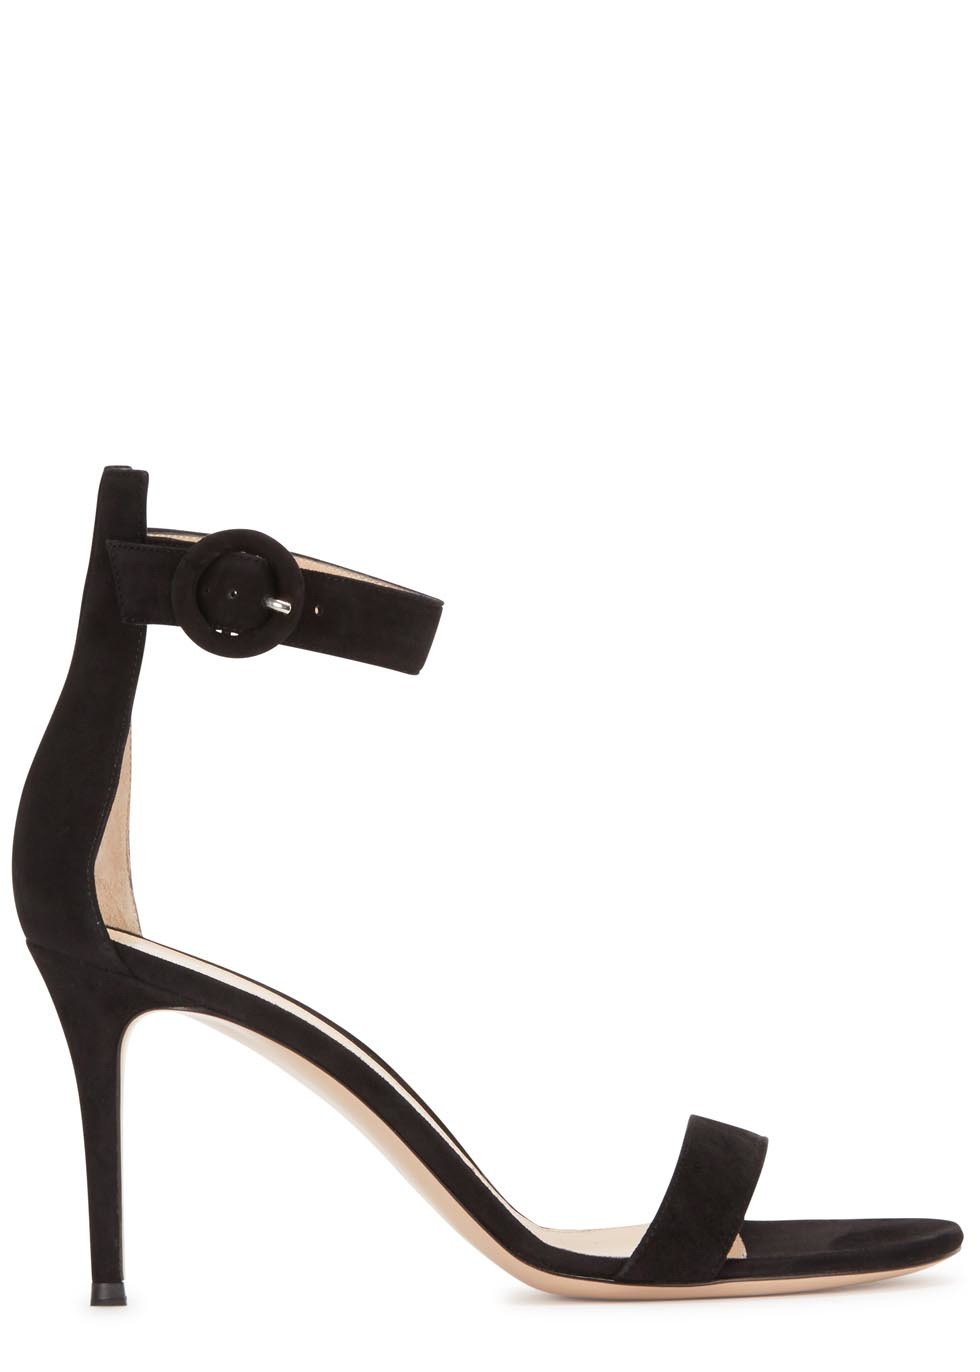 Portofino Black Suede Sandals - predominant colour: black; occasions: evening, occasion; material: suede; ankle detail: ankle strap; heel: stiletto; toe: open toe/peeptoe; style: strappy; finish: plain; pattern: plain; heel height: very high; season: a/w 2015; wardrobe: event